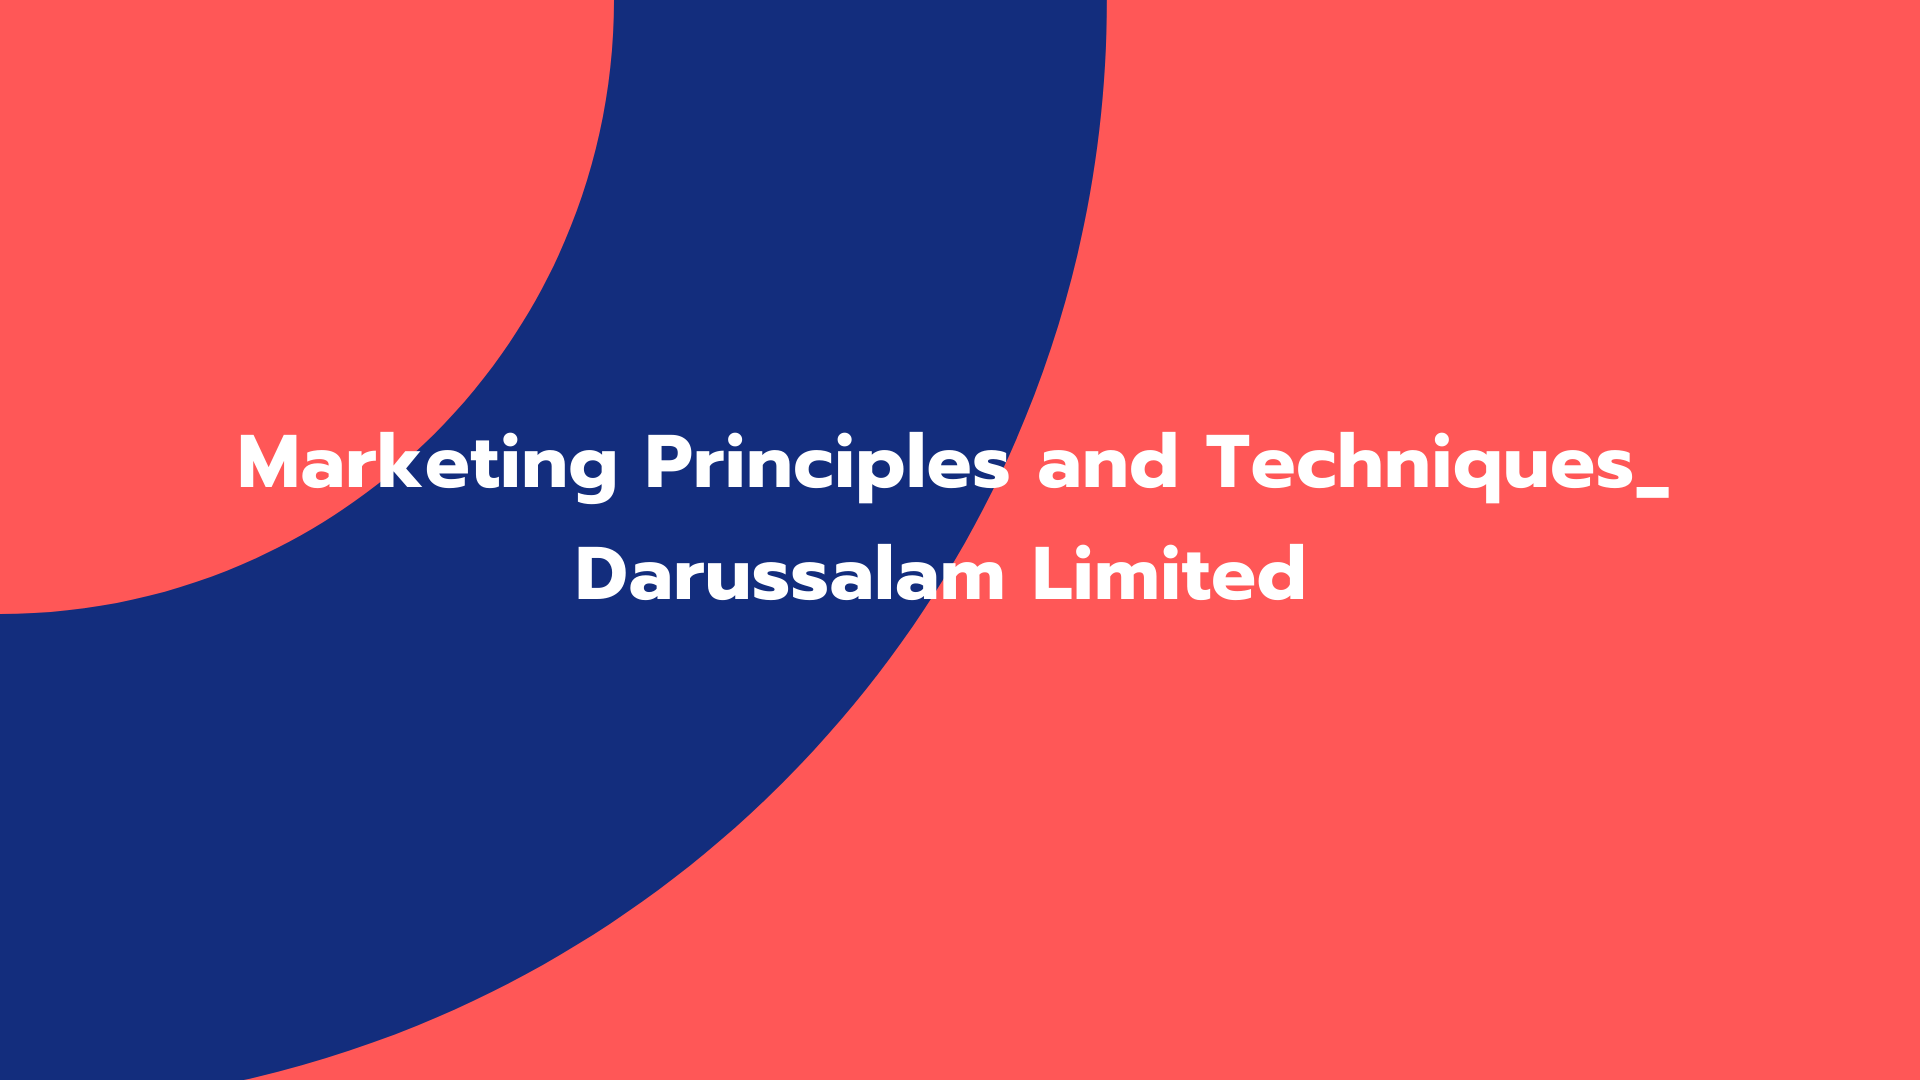 Marketing Principles and Techniques_ Darussalam Limited